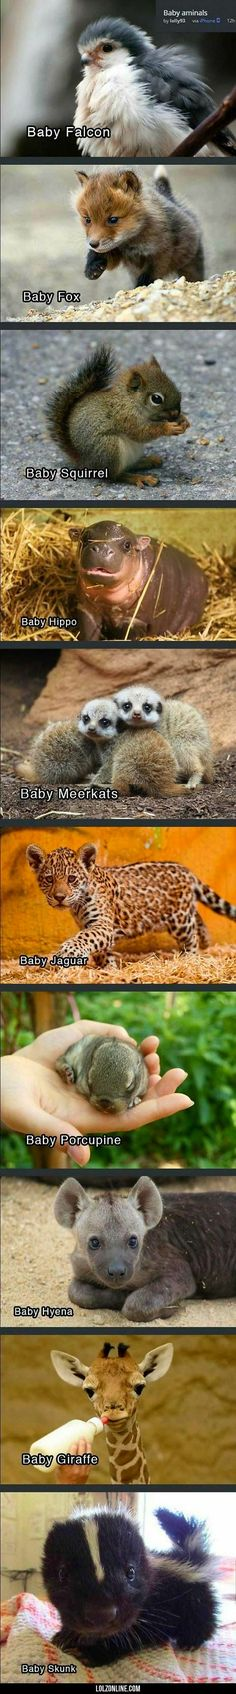 This pic is so cute! I can't believe how adorable baby animals can be! The Animals, Baby Animals Pictures, Cute Little Animals, Cute Animal Pictures, Cute Funny Animals, Funny Cute, Cute Dogs, Cute Babies, Small Animals